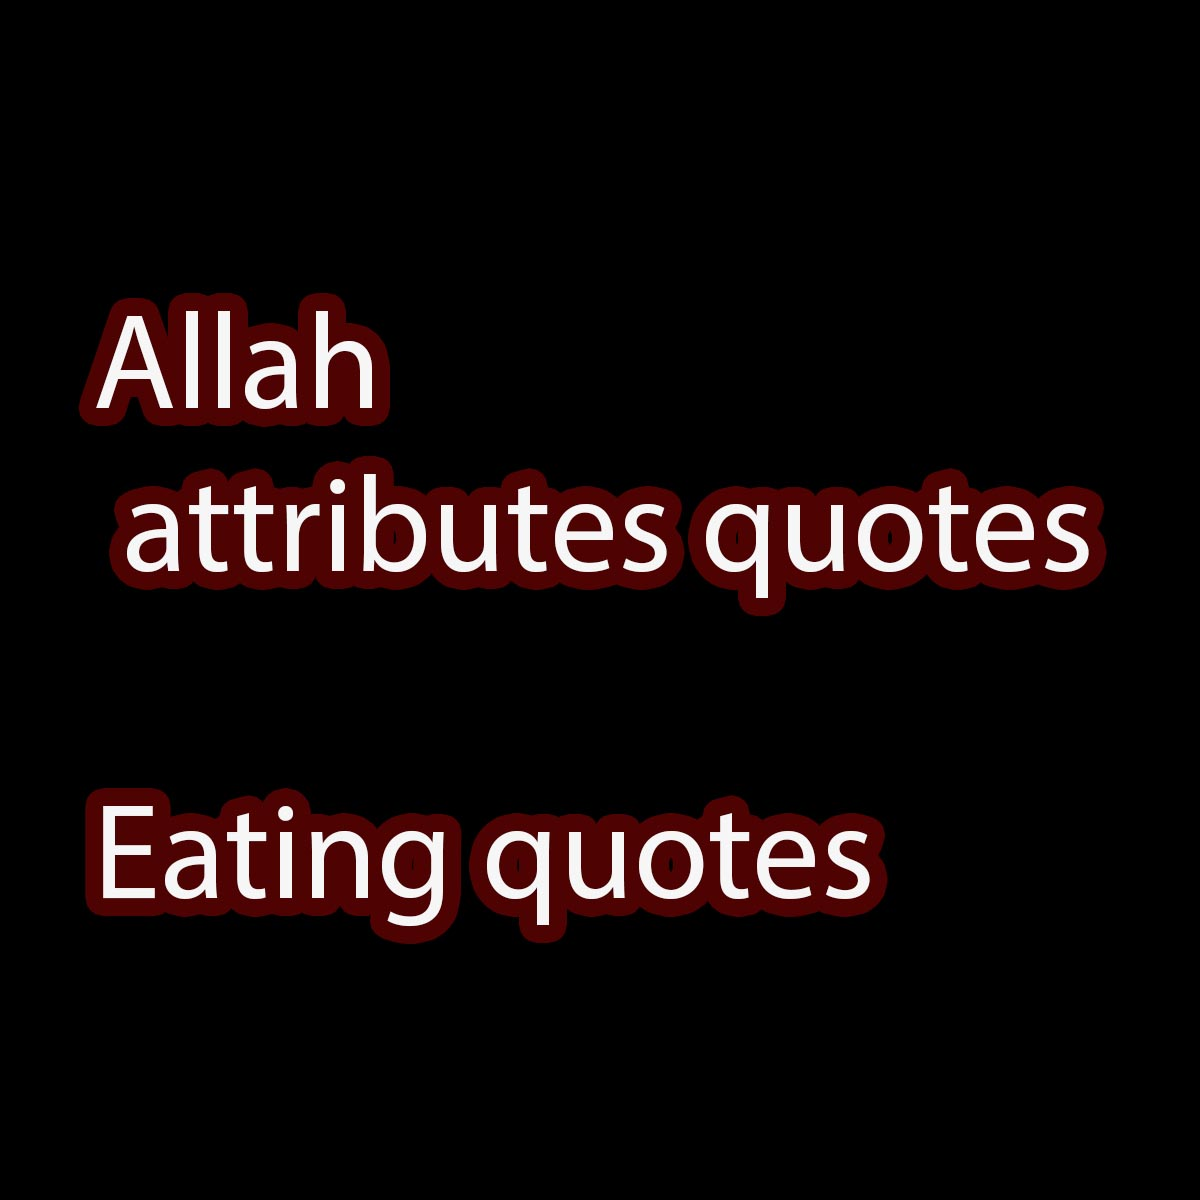 Allah quotes eating quotes